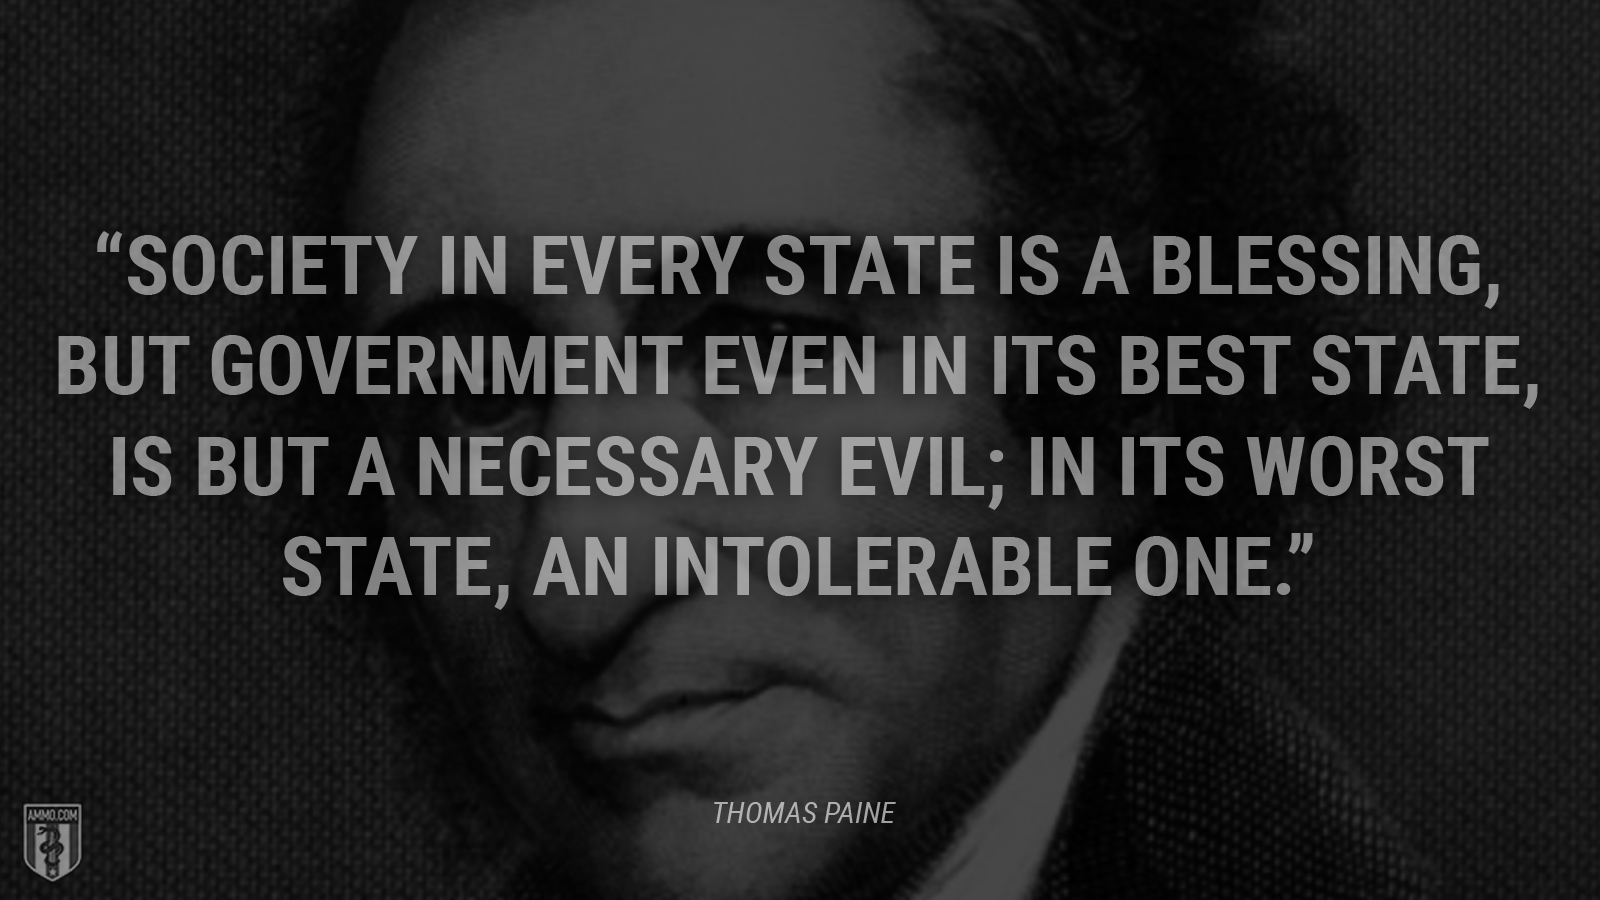 """""""Society in every state is a blessing, but government even in its best state, is but a necessary evil; in its worst state, an intolerable one."""" - Thomas Paine"""